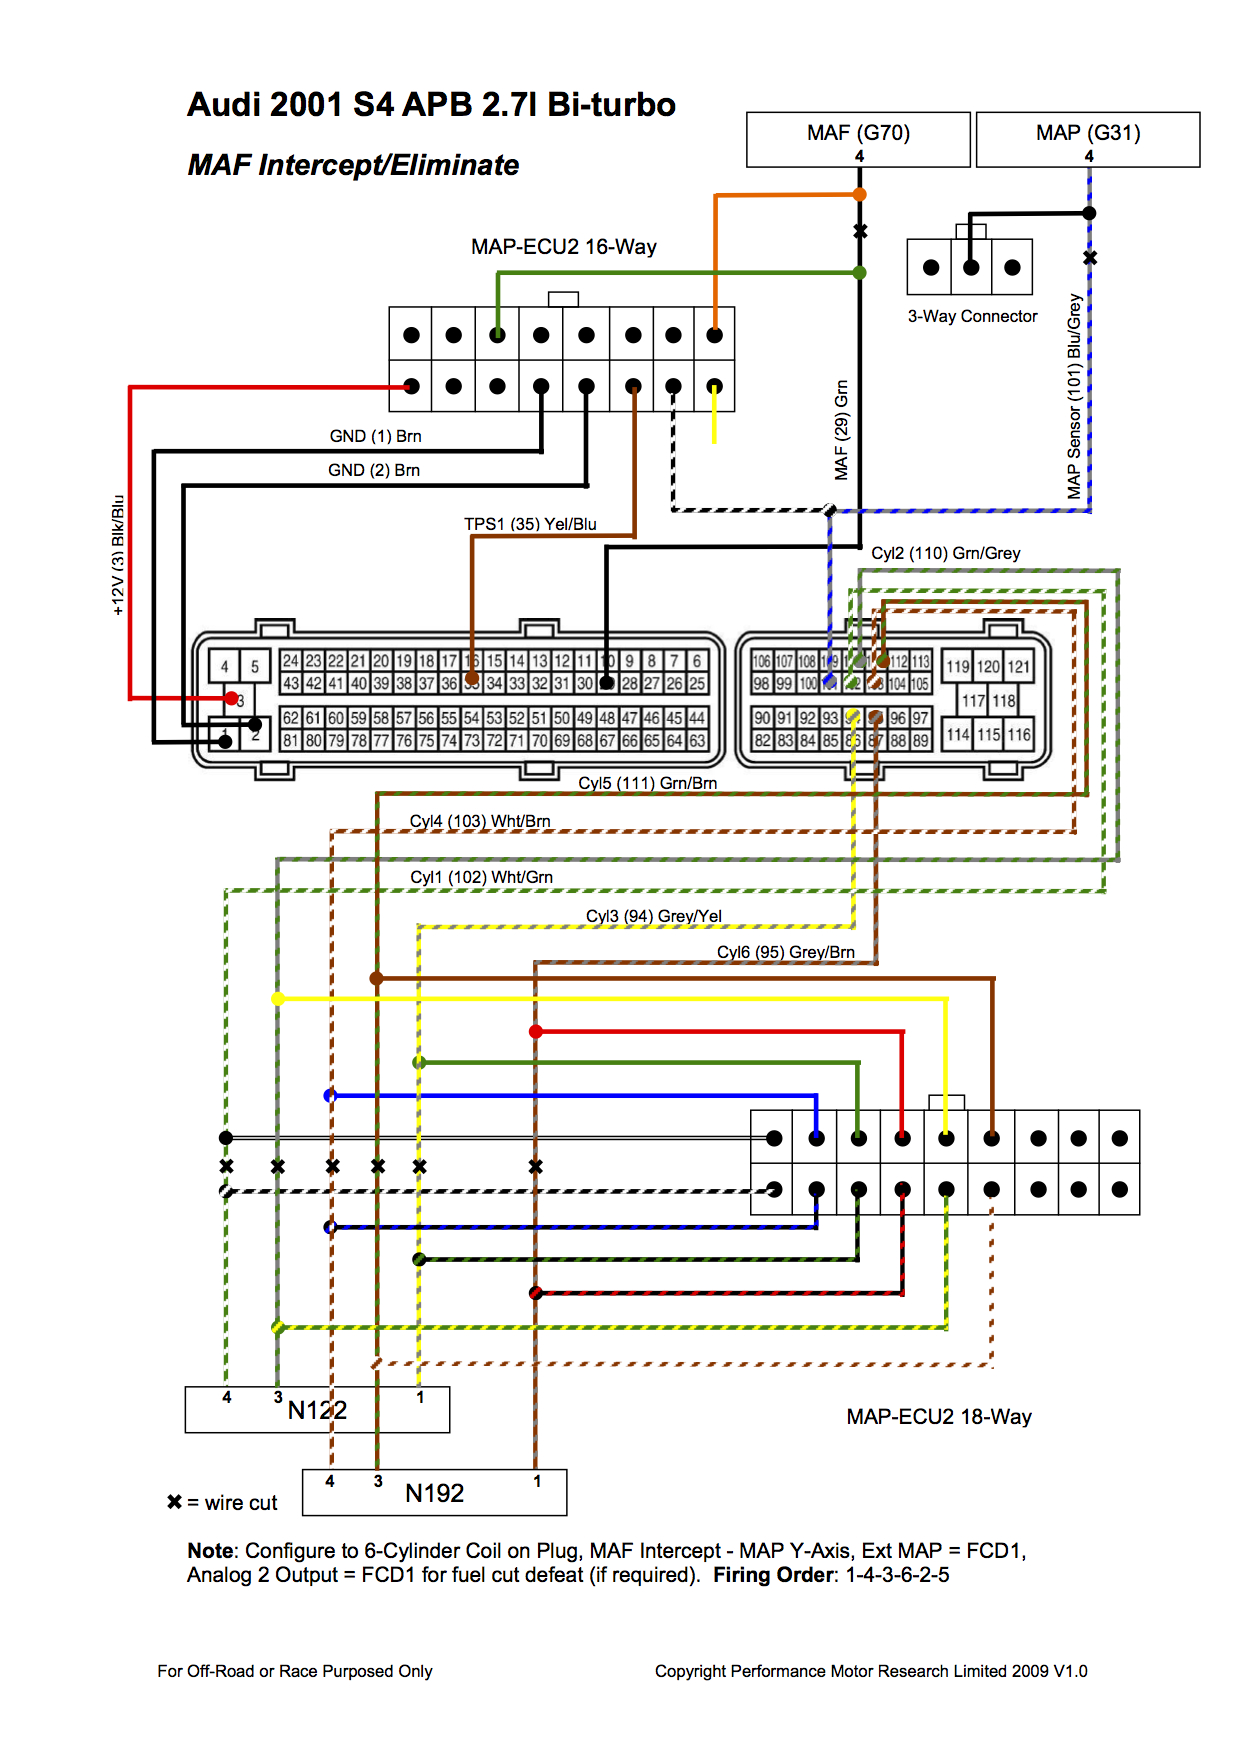 Audi S4 20011 ecu wiring diagram paccar ecu wiring diagram \u2022 wiring diagrams j toyota radio wiring diagrams color code at fashall.co